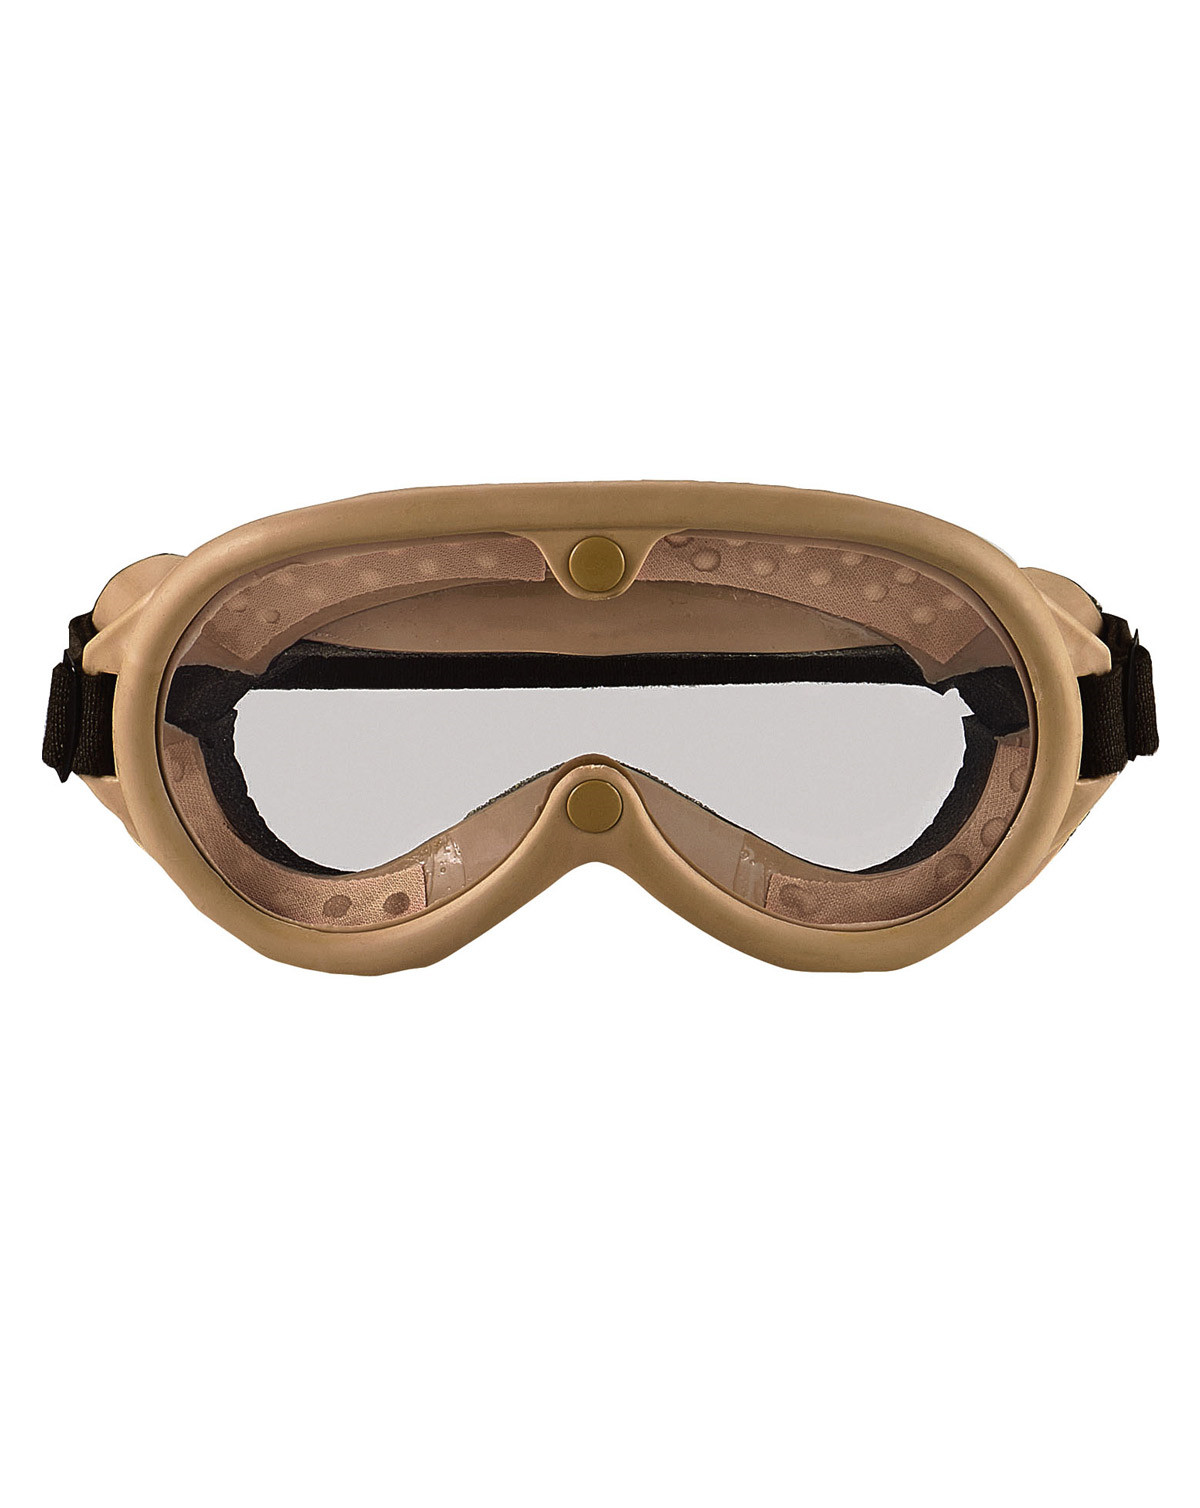 Image of   Rothco Goggles (Tan, One Size)